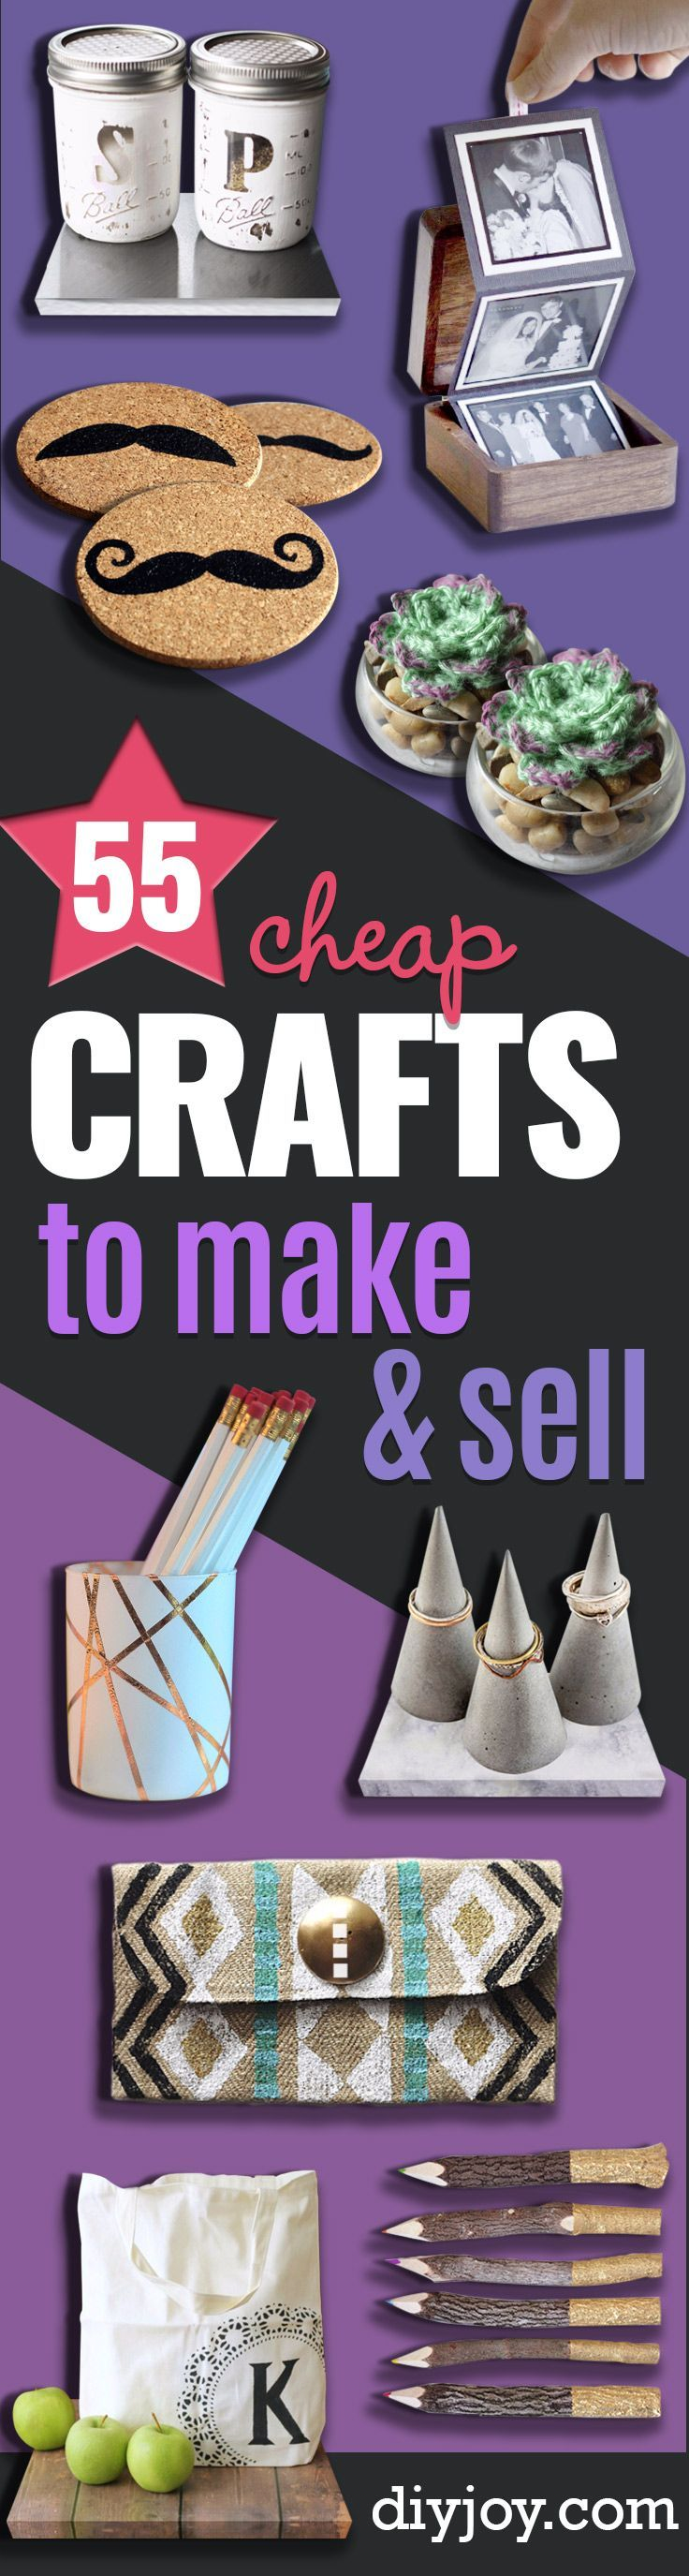 best 25 quick crafts ideas on pinterest